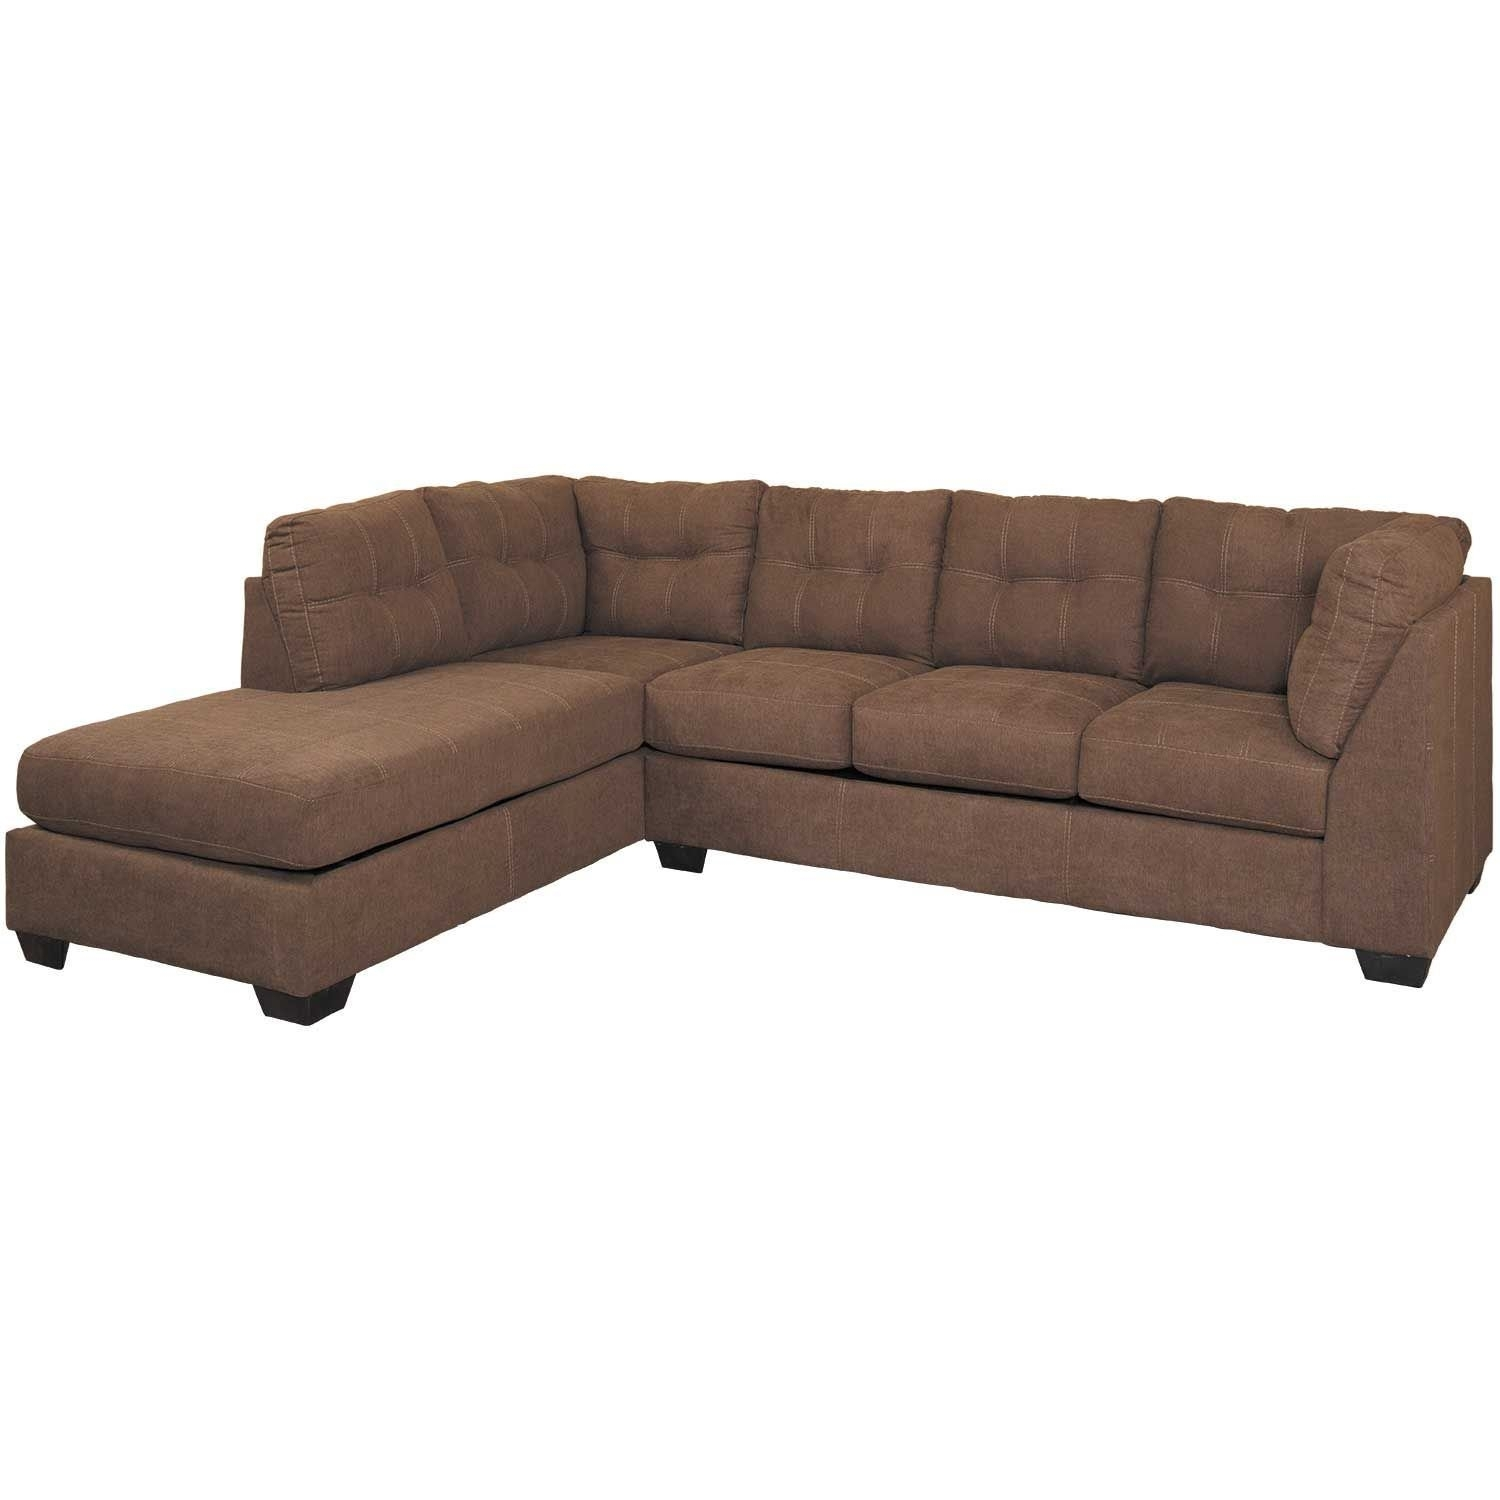 Maier Walnut 2 Piece Sectional With Laf Chaise | 4520116/67 | Ashley Regarding Arrowmask 2 Piece Sectionals With Laf Chaise (Image 14 of 25)